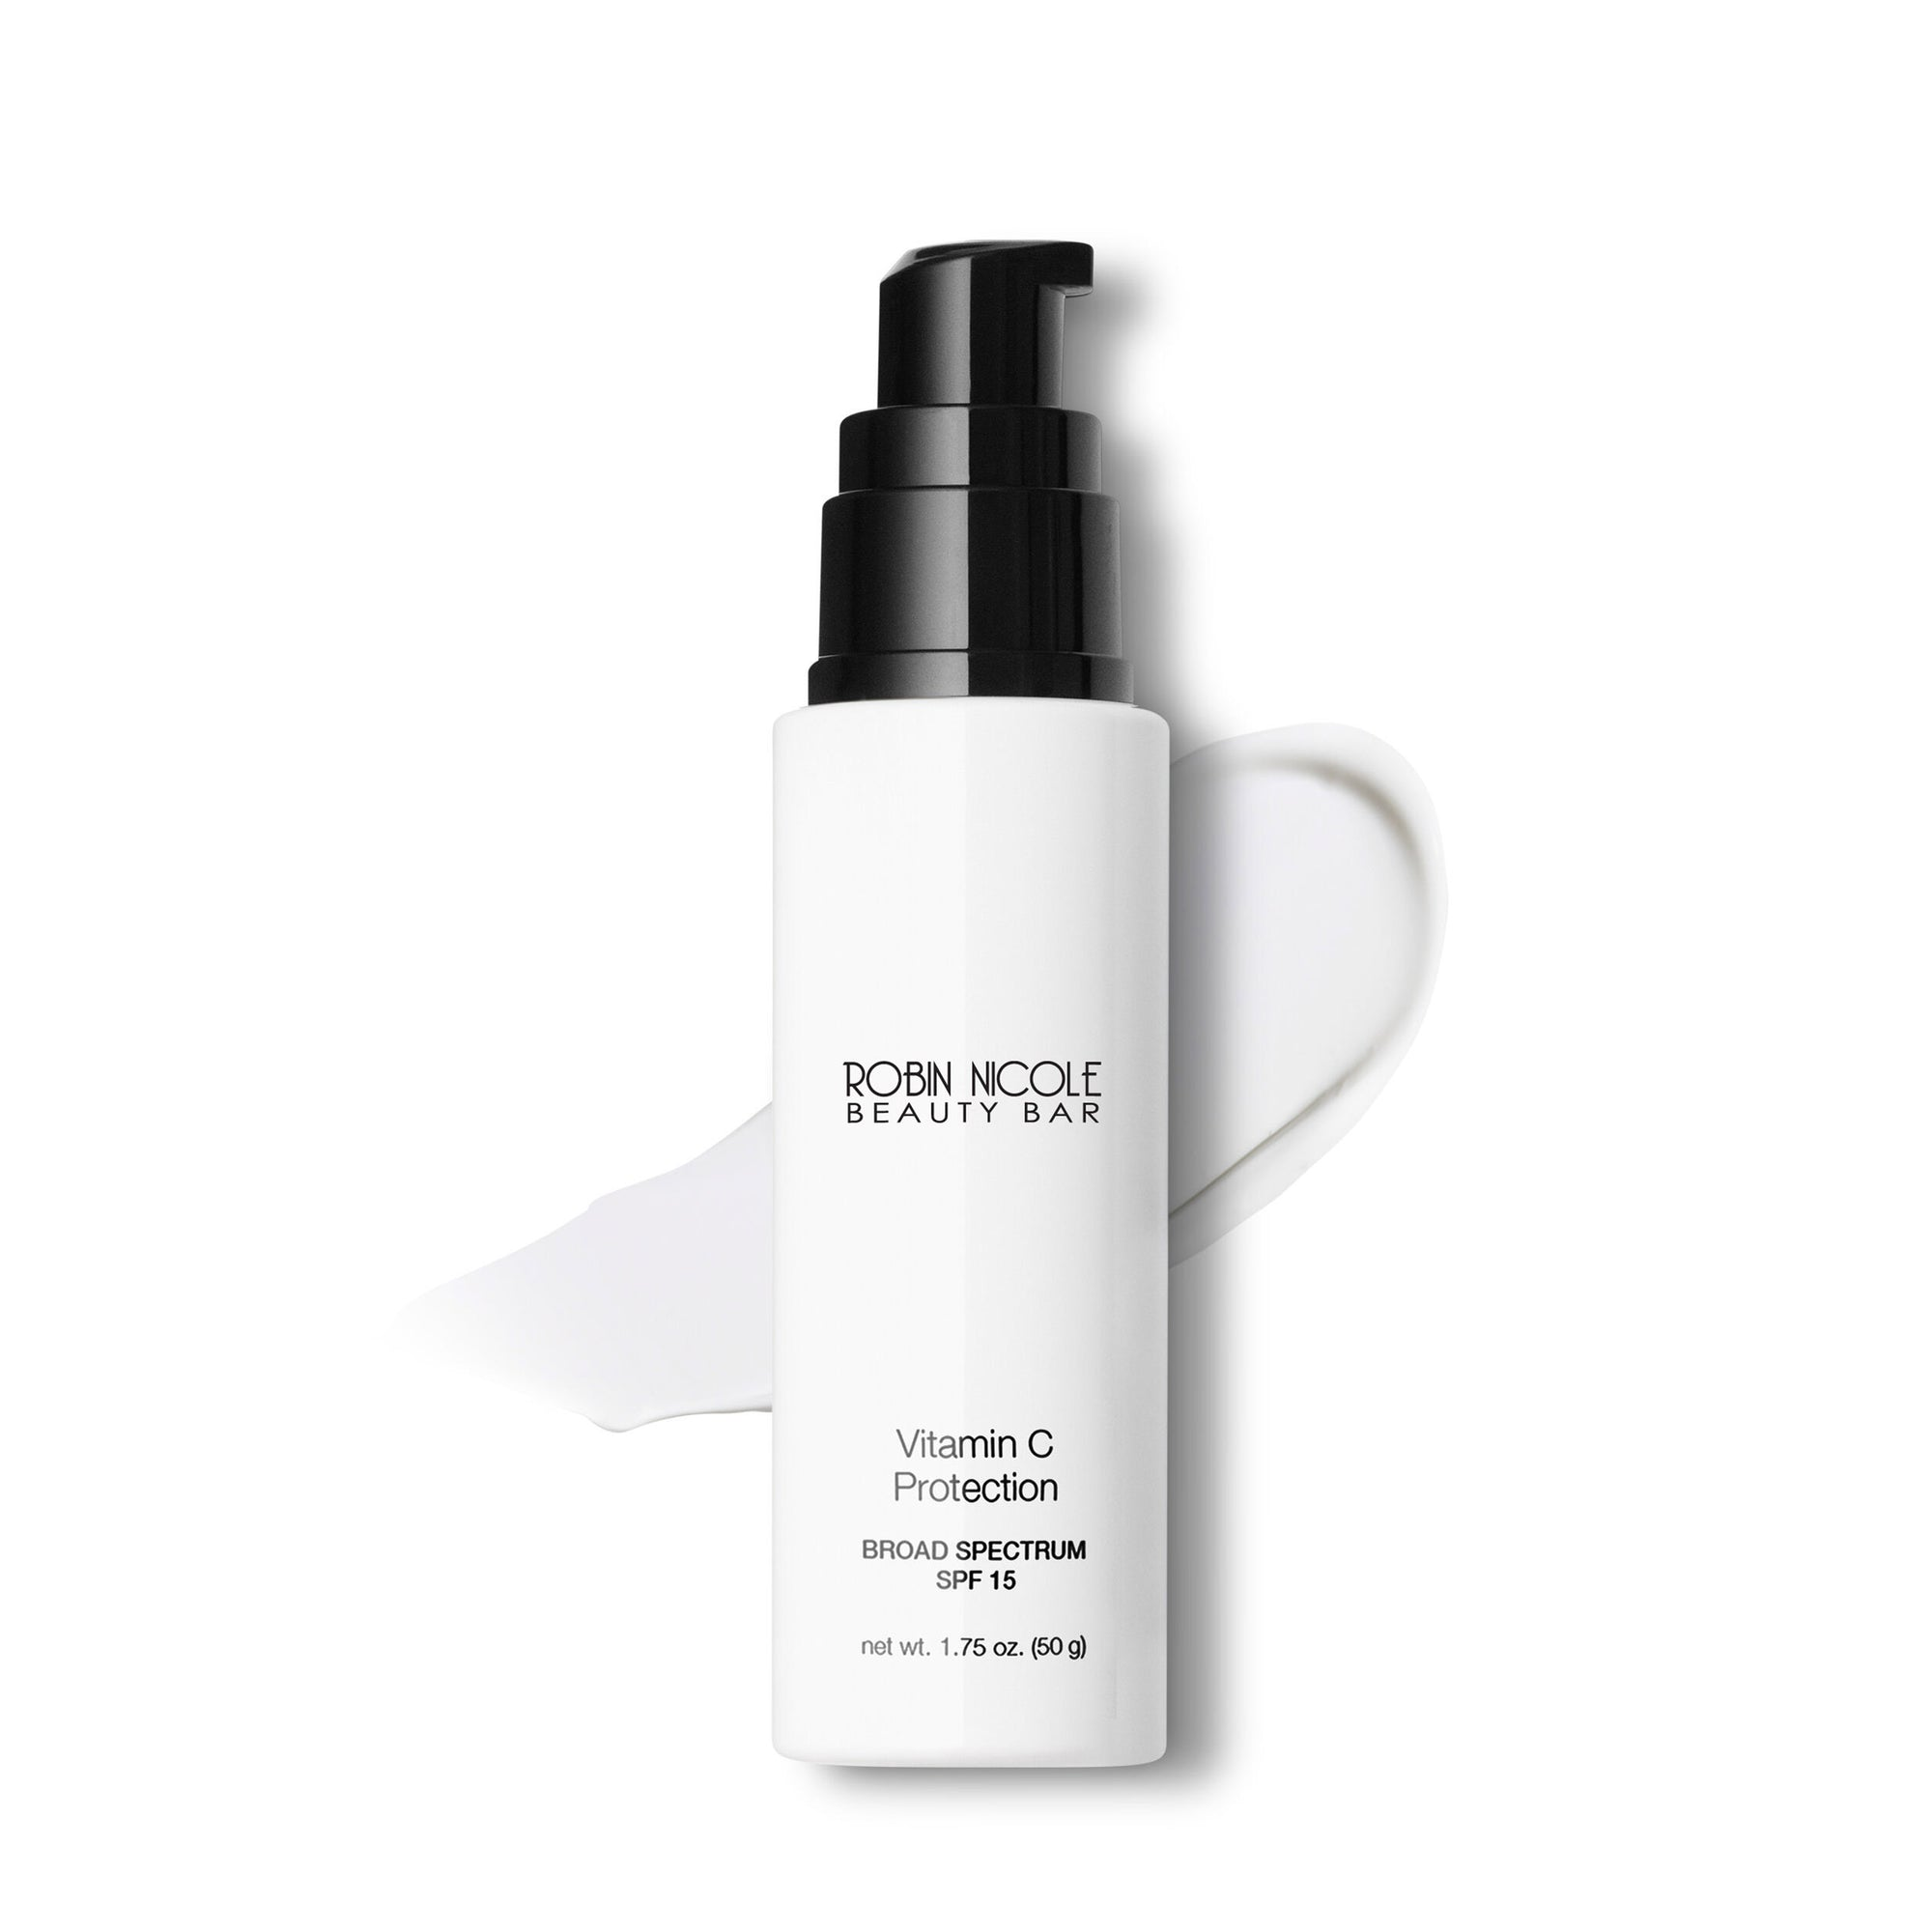 Vitamin C Protection SPF 15